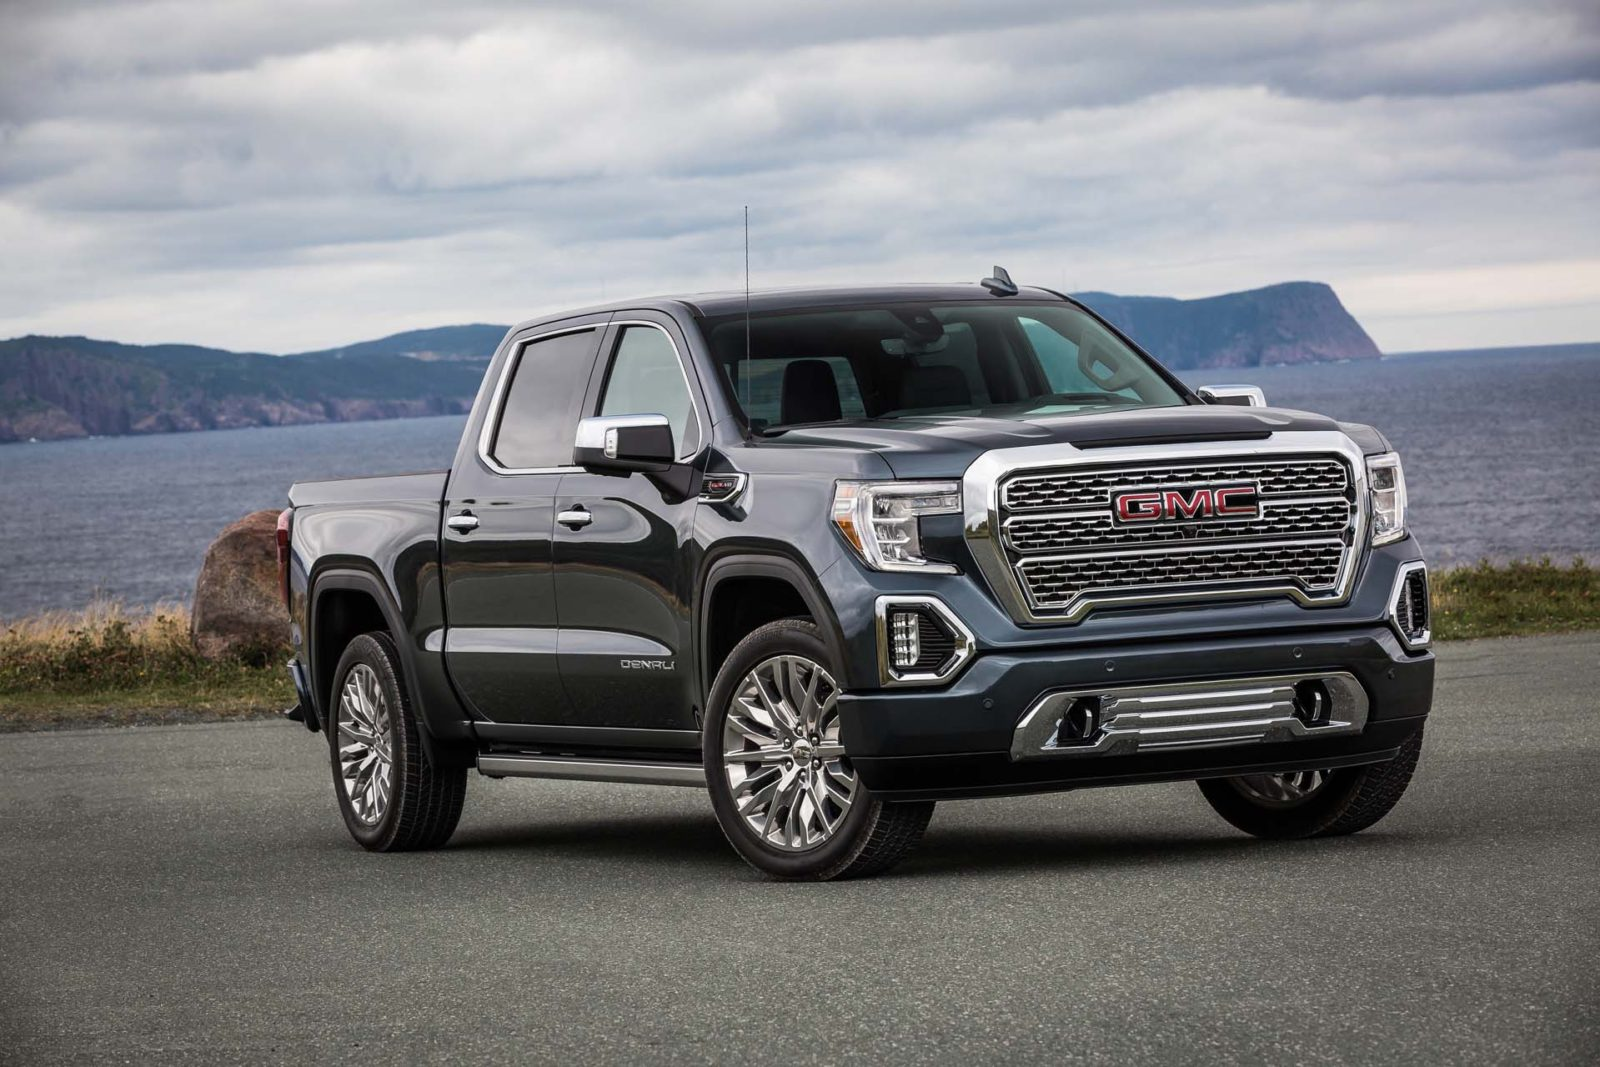 gmc-to-sell-full-size-electric-pickup-truck-alongside-hummer-ev